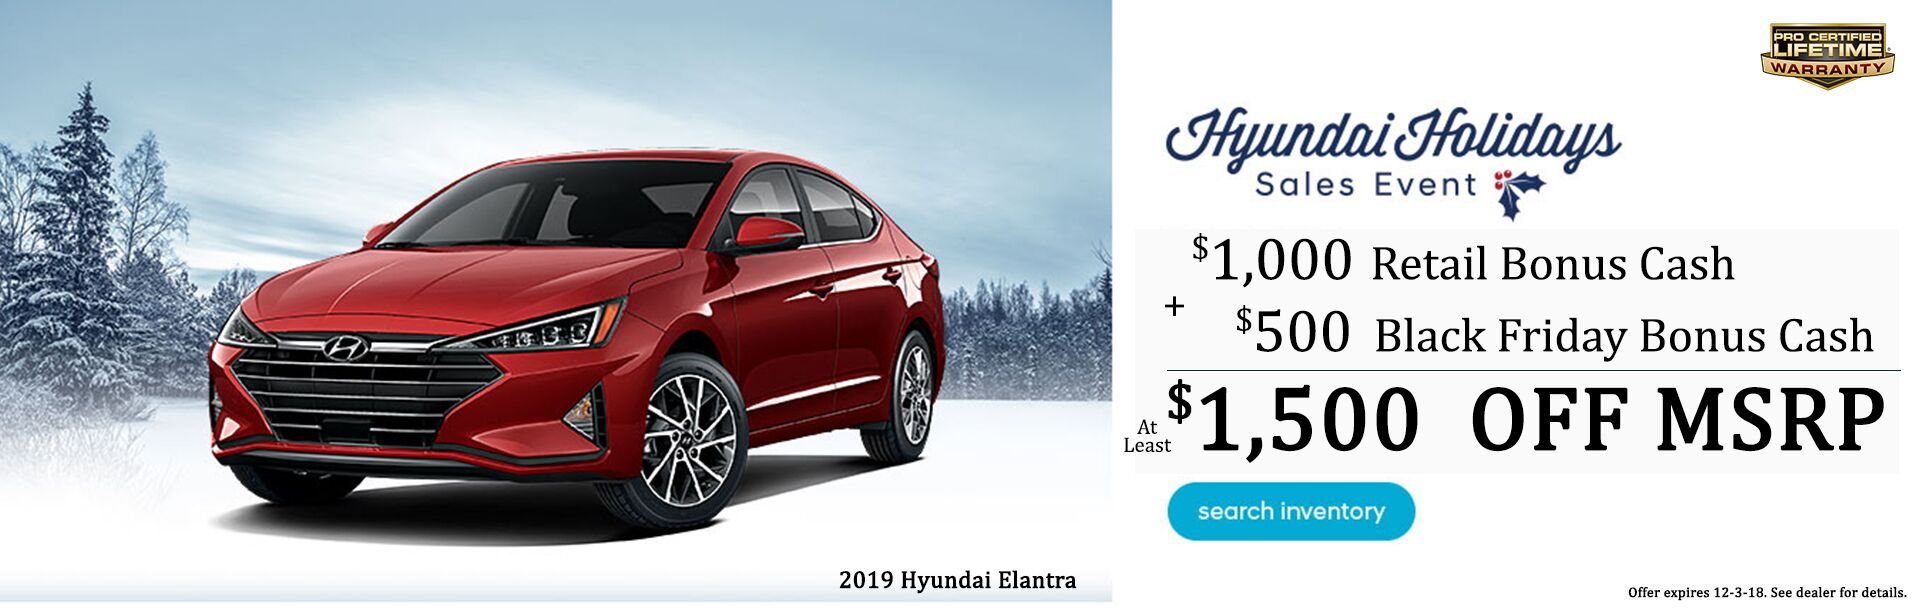 Elantra Holiday Savings